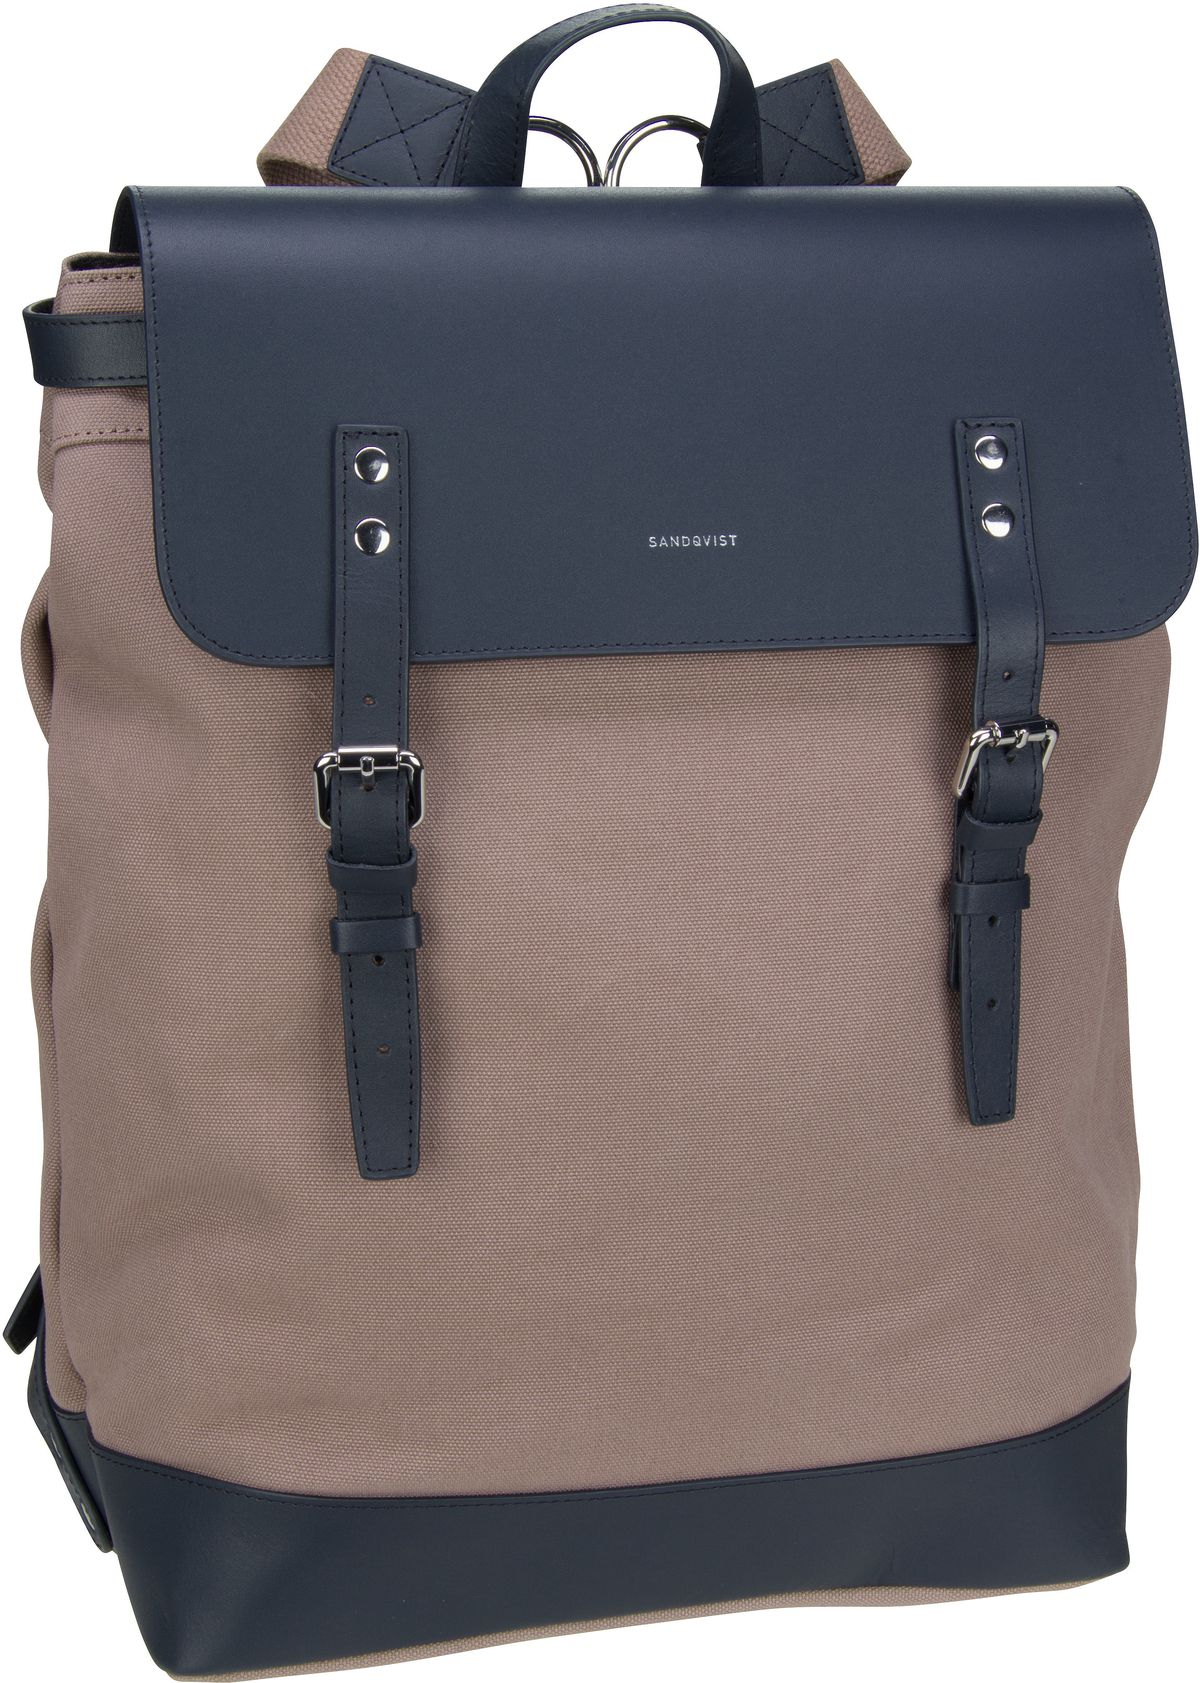 Laptoprucksack Hege Canvas Backpack Earth Brown/Navy Leather (18 Liter)